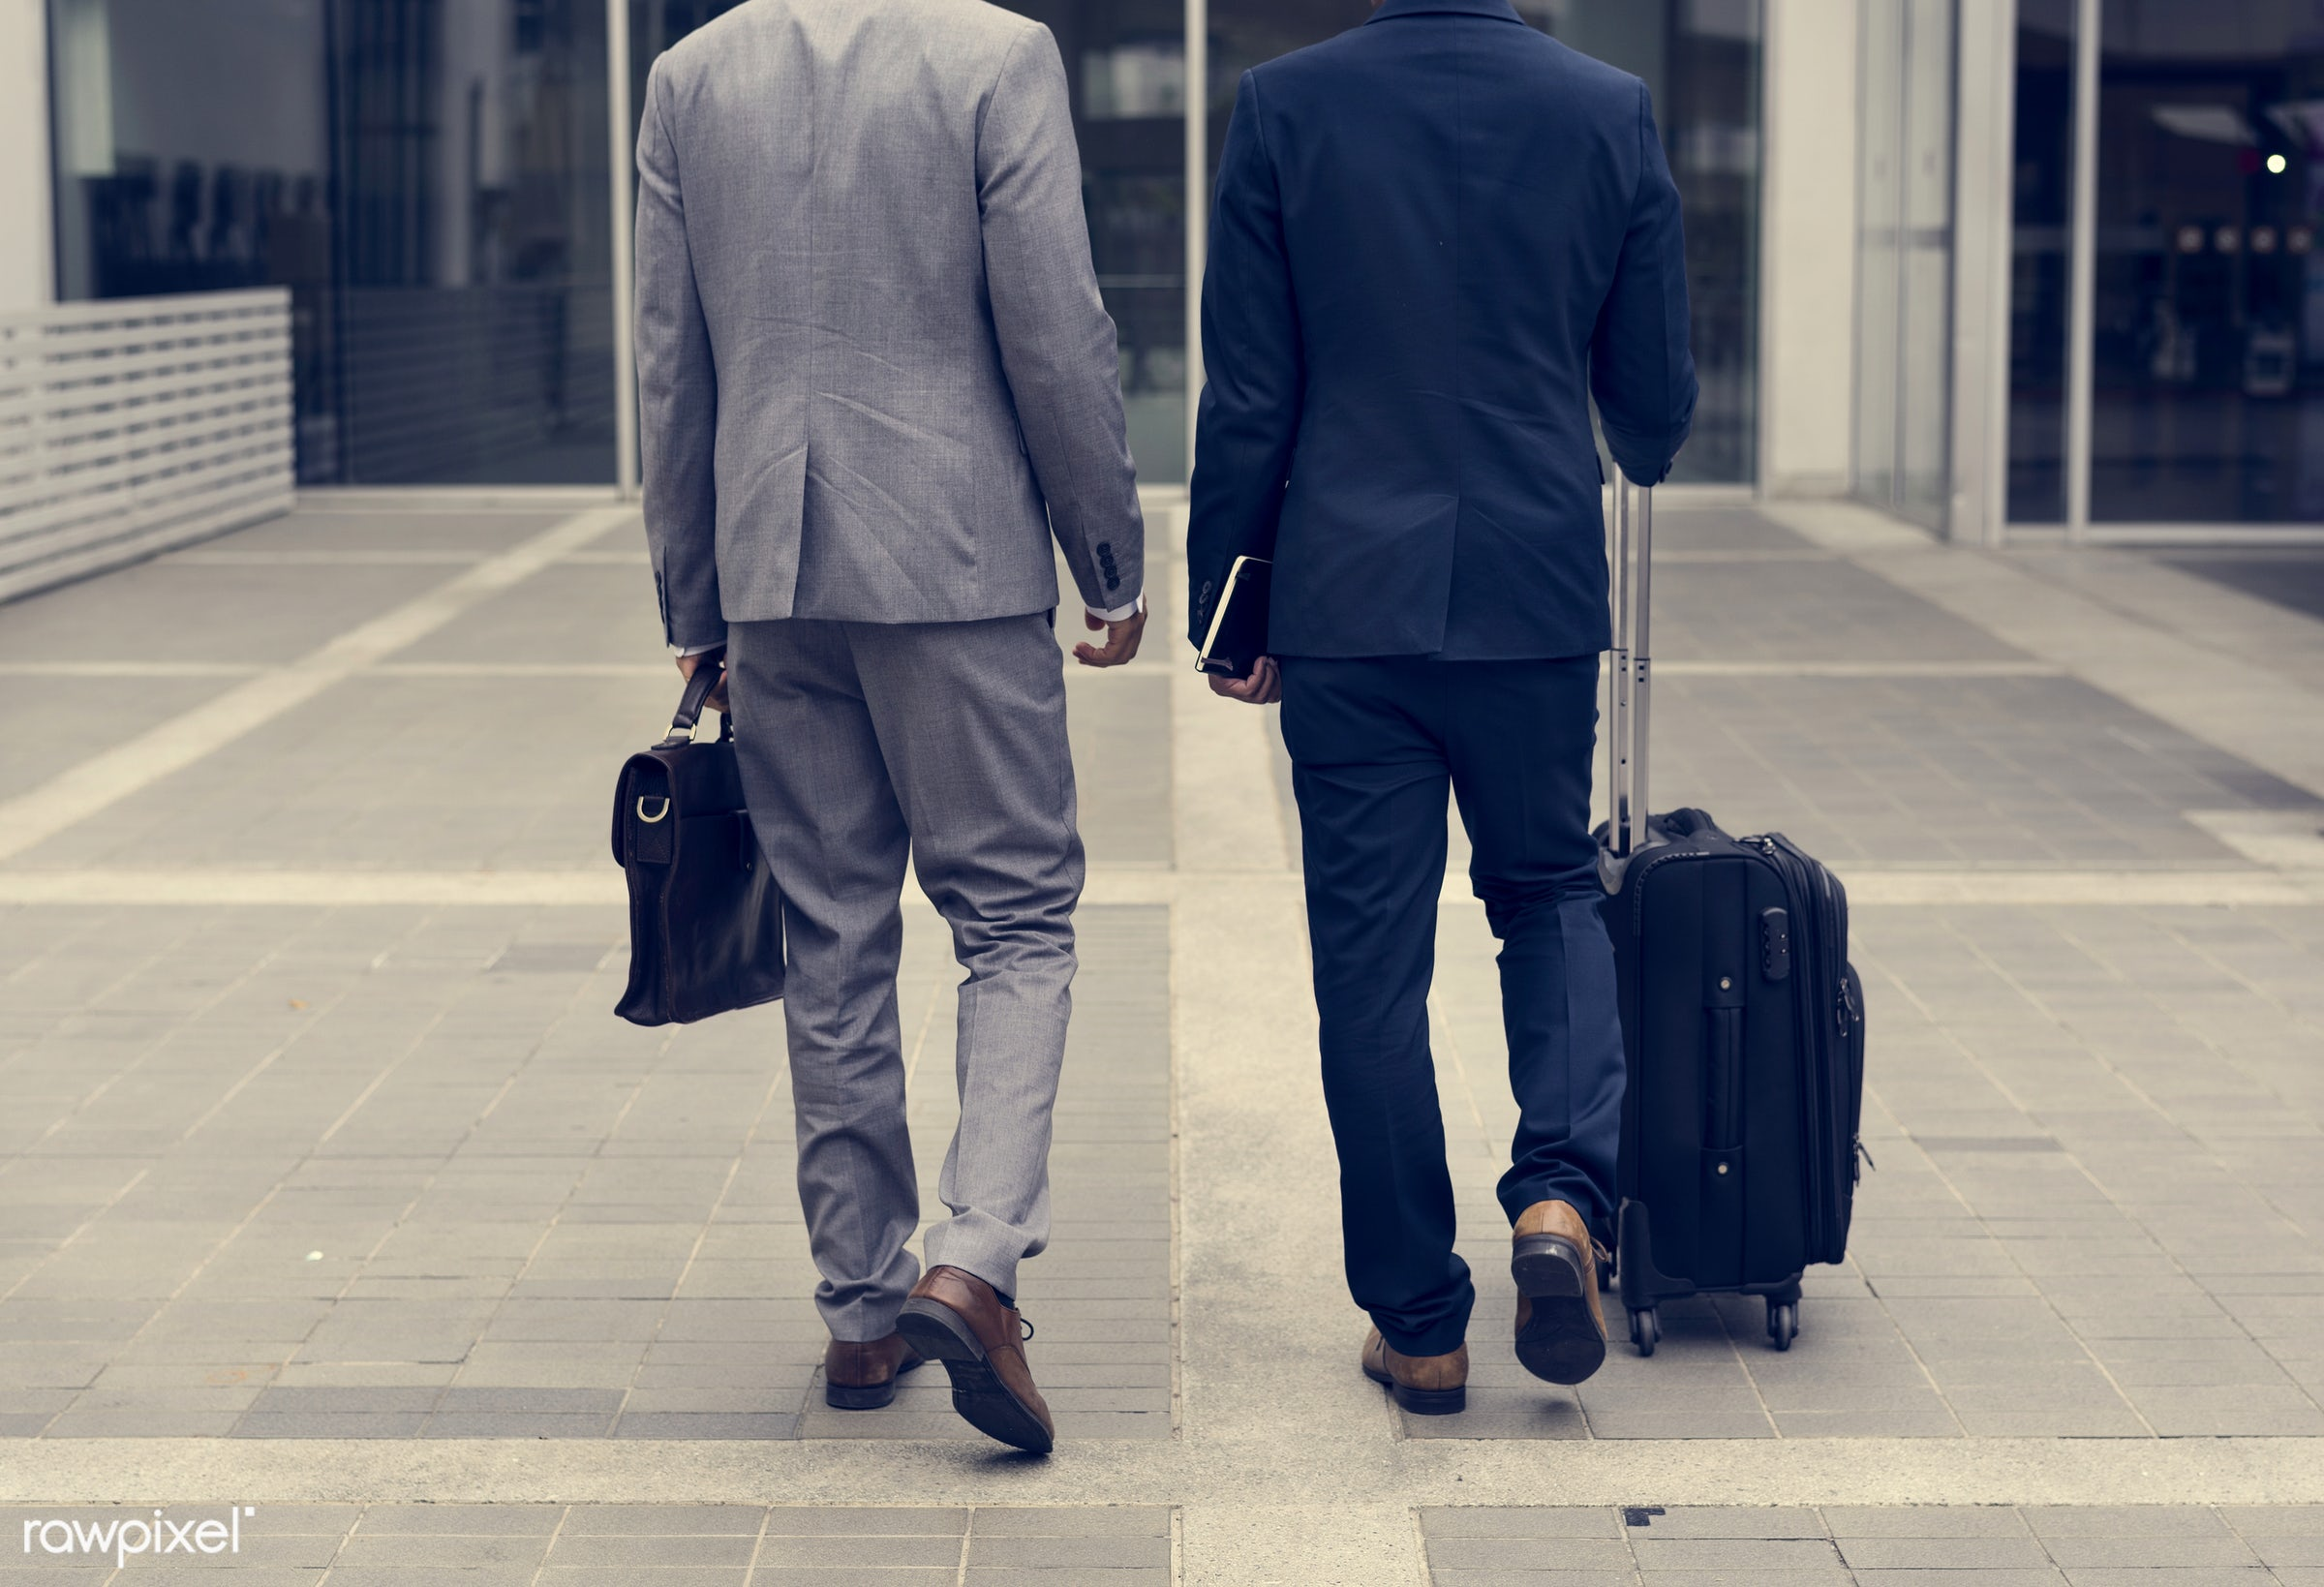 business trip, expression, face, person, suit and tie, manager, white collar worker, diverse, luggage, travel, people,...